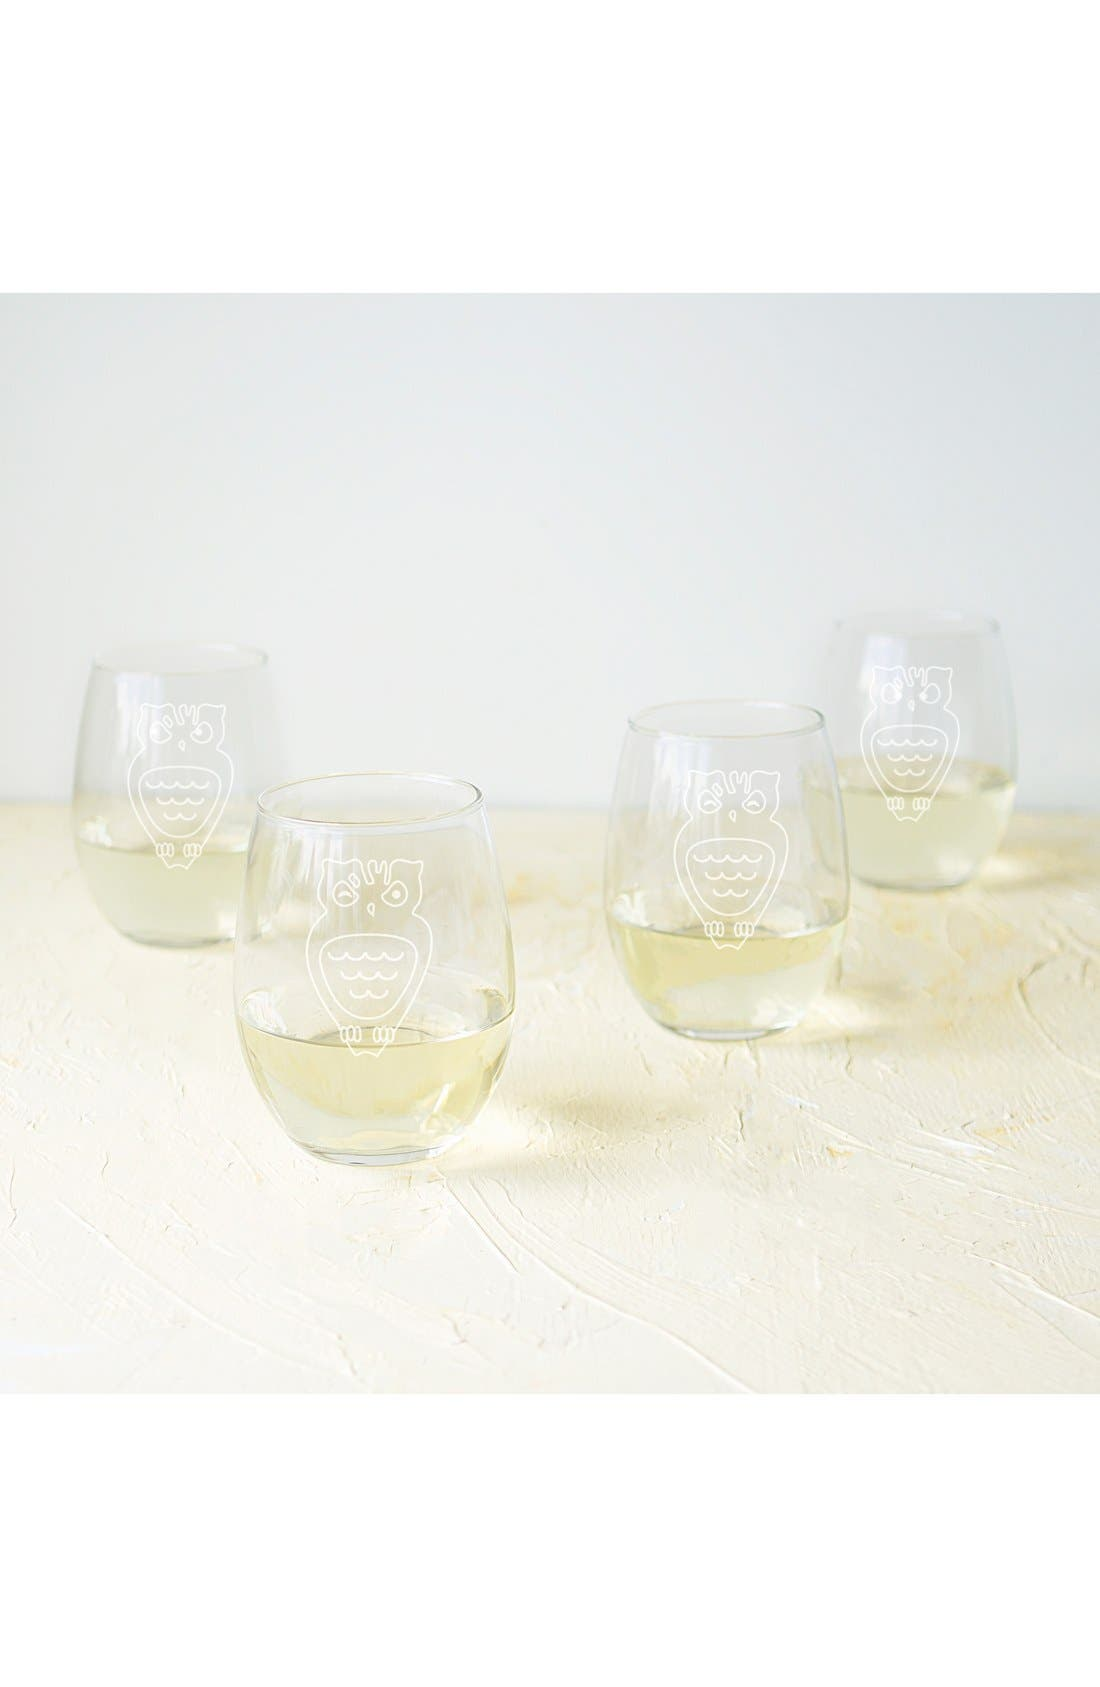 Owl Set of 4 Stemless Wine Glasses,                             Main thumbnail 1, color,                             CLEAR